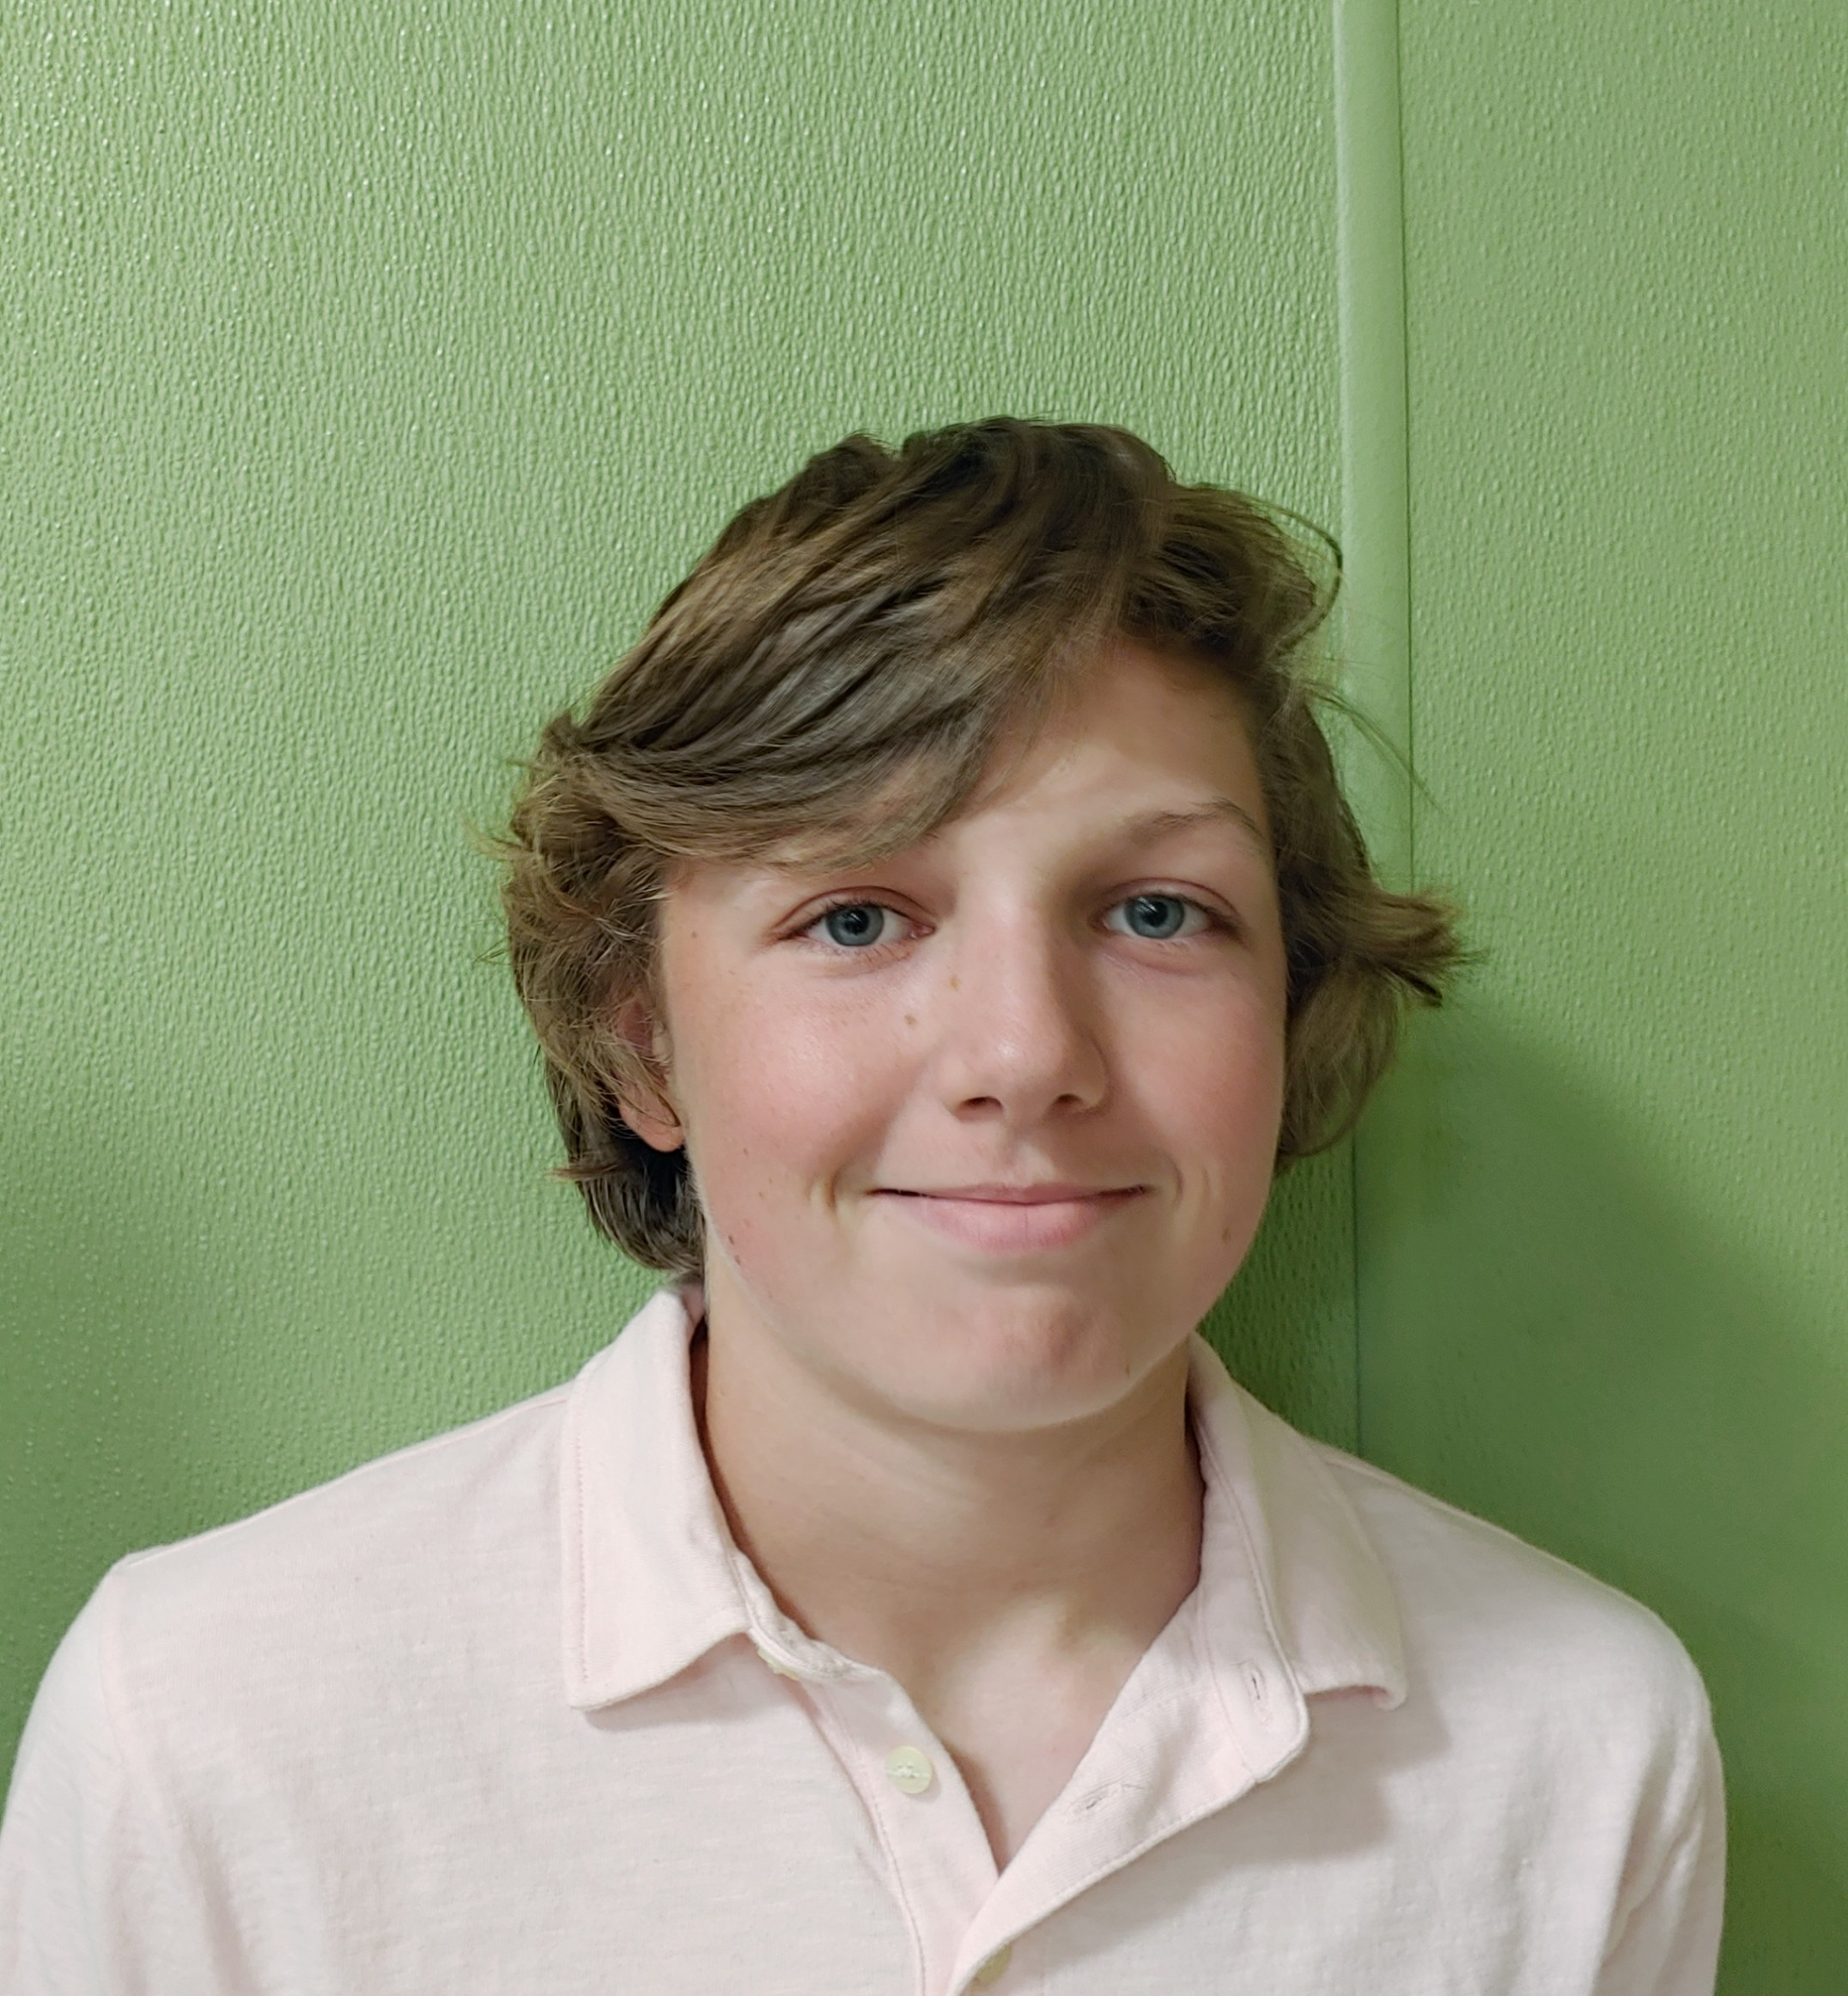 We are not doing much differently, but we are using hand sanitizer more.  Keith, age 14  Daniel Island